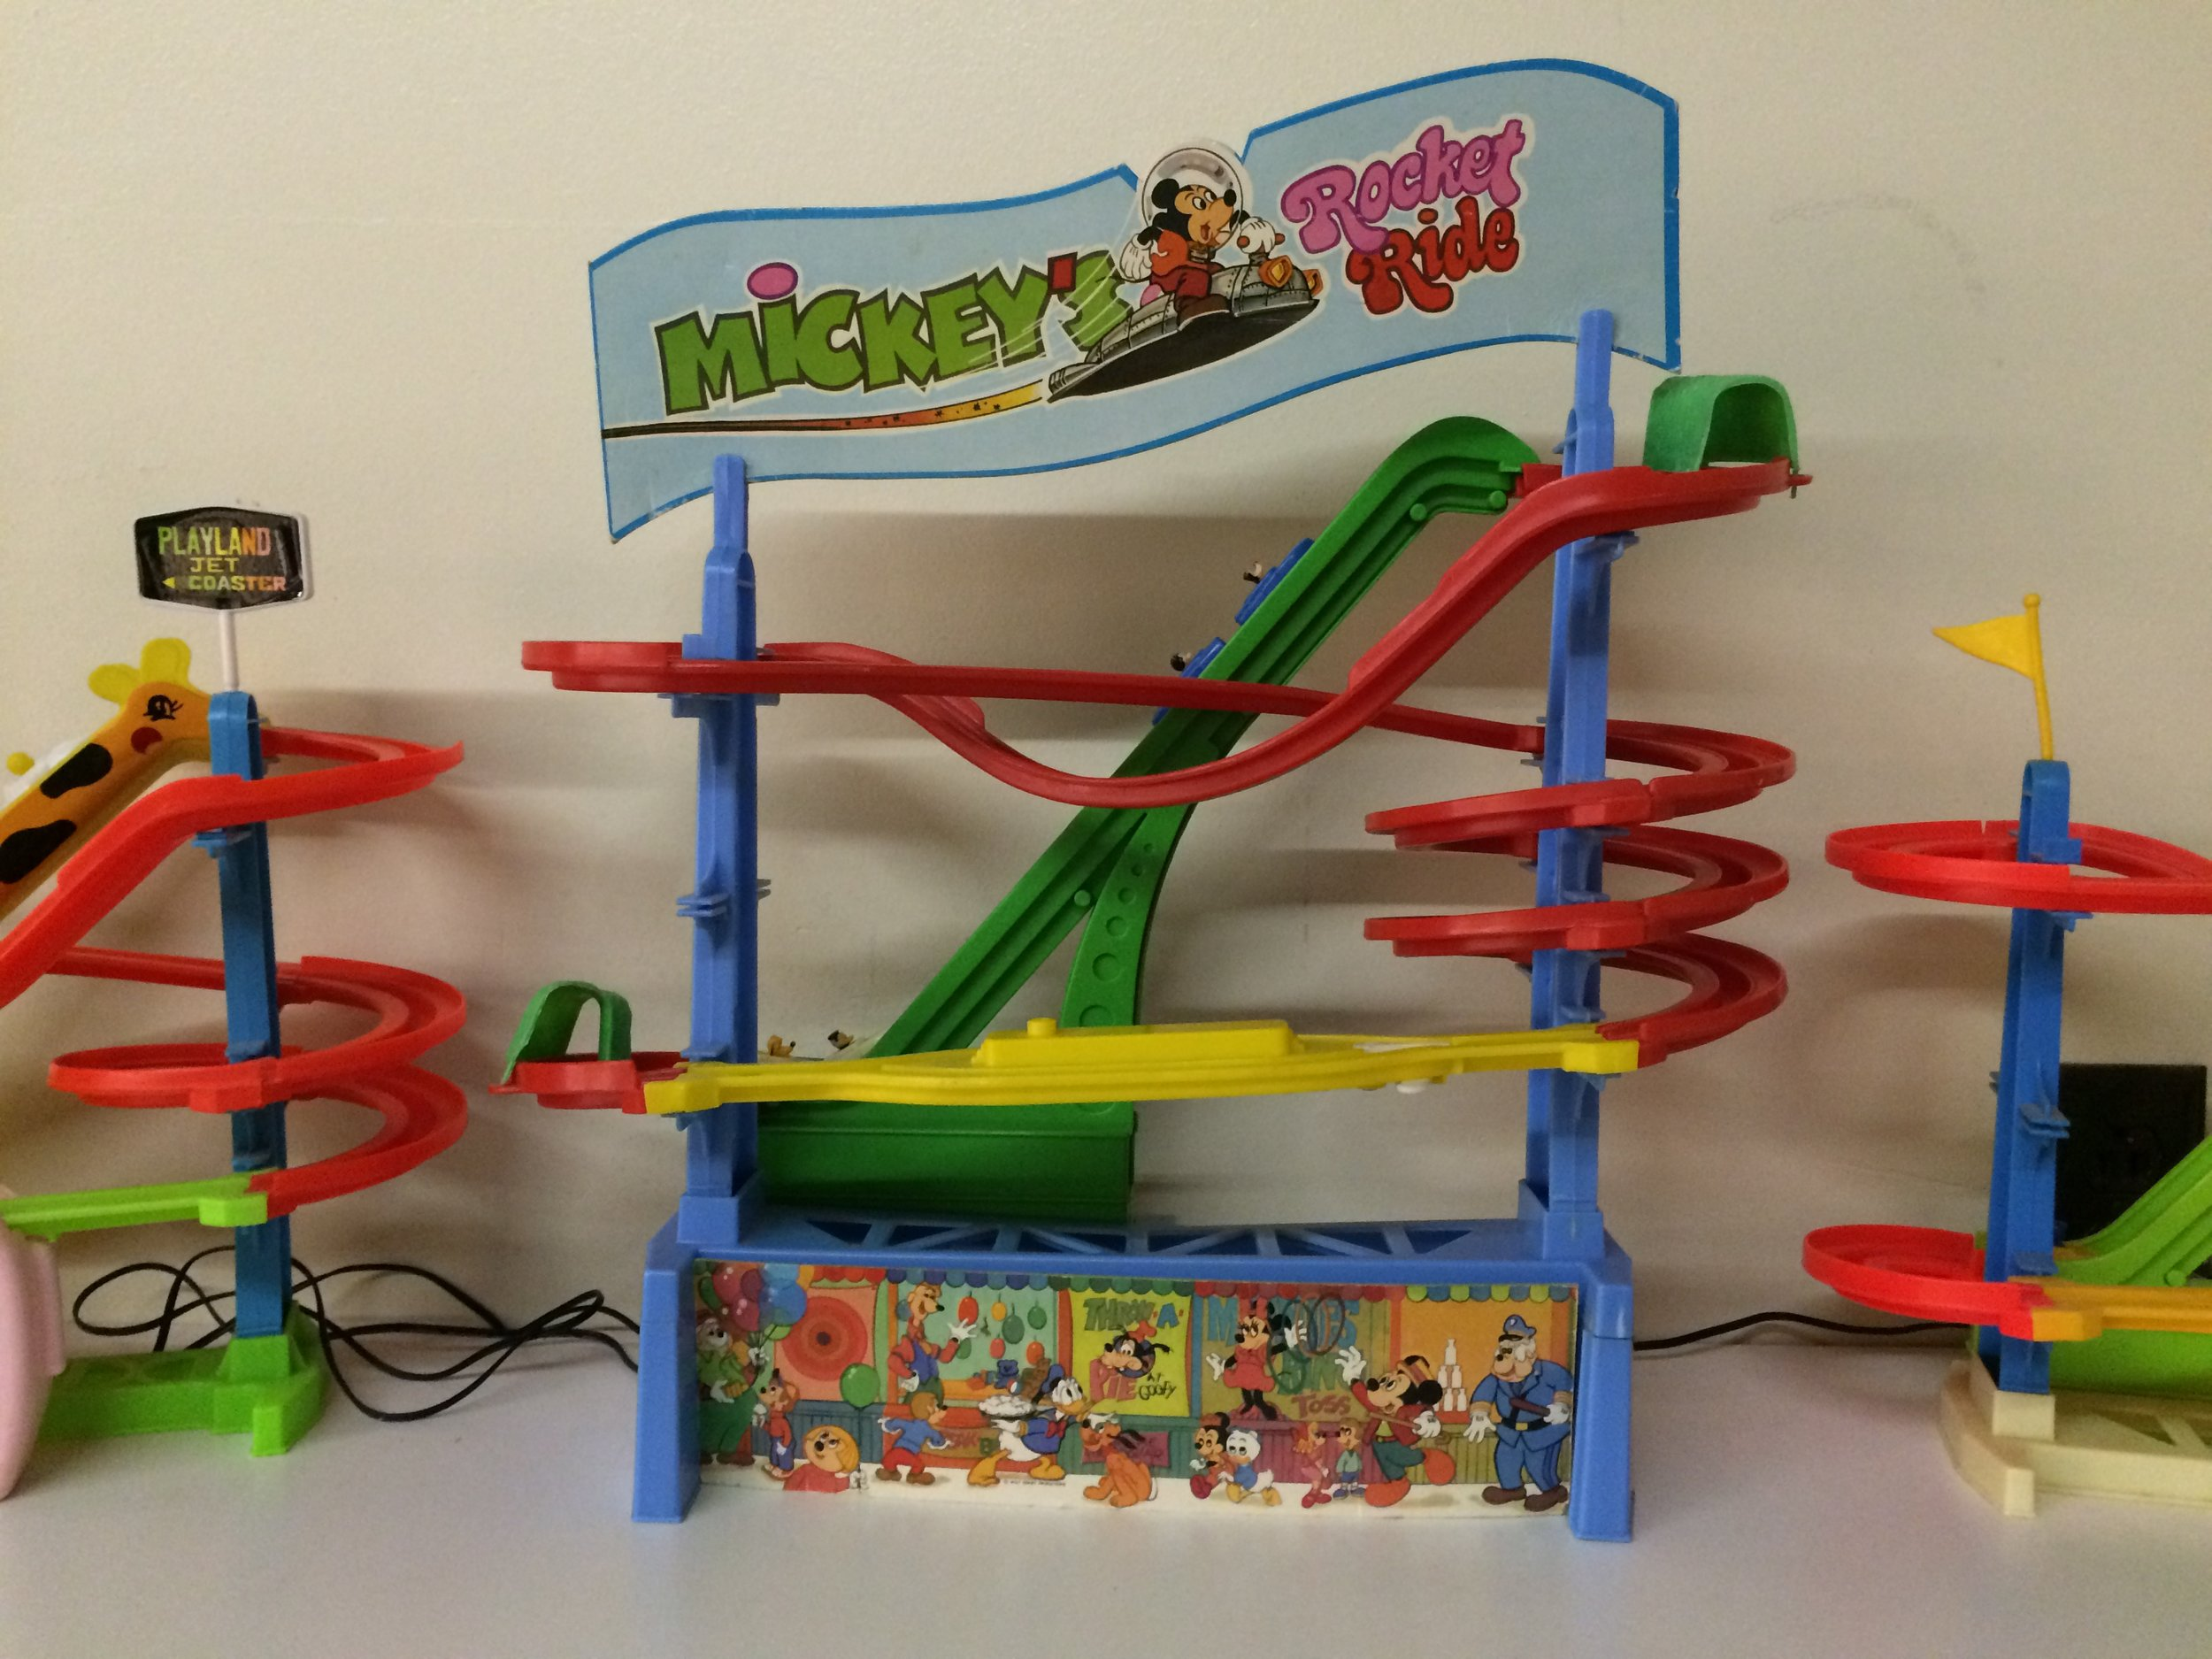 Exhibit: Playtime: Roller Coaster Toy Gallery - Illco Roller Coaster Jet Coasters